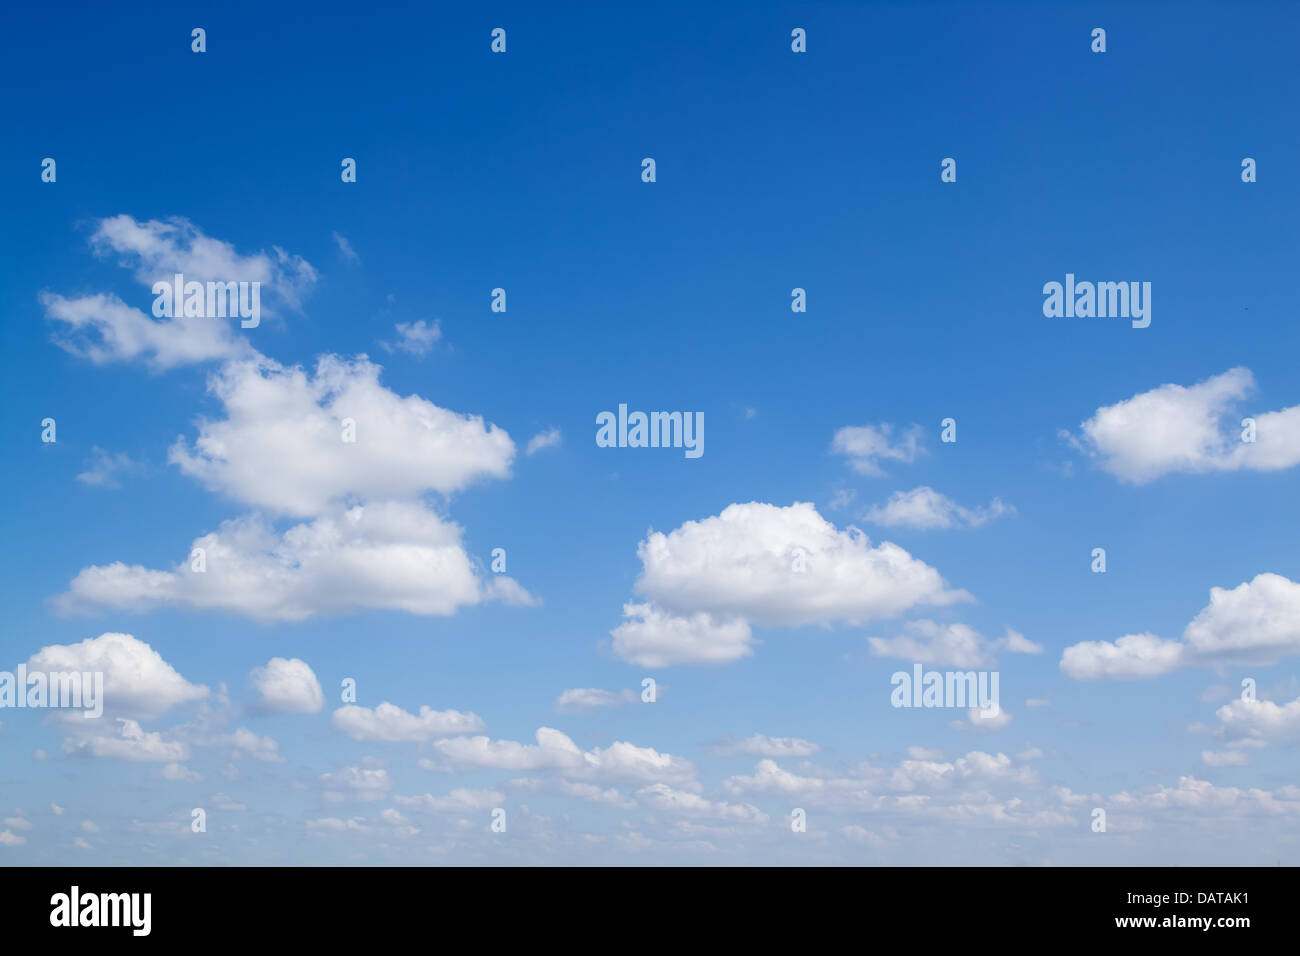 White fluffy clouds in the blue sky Stock Photo